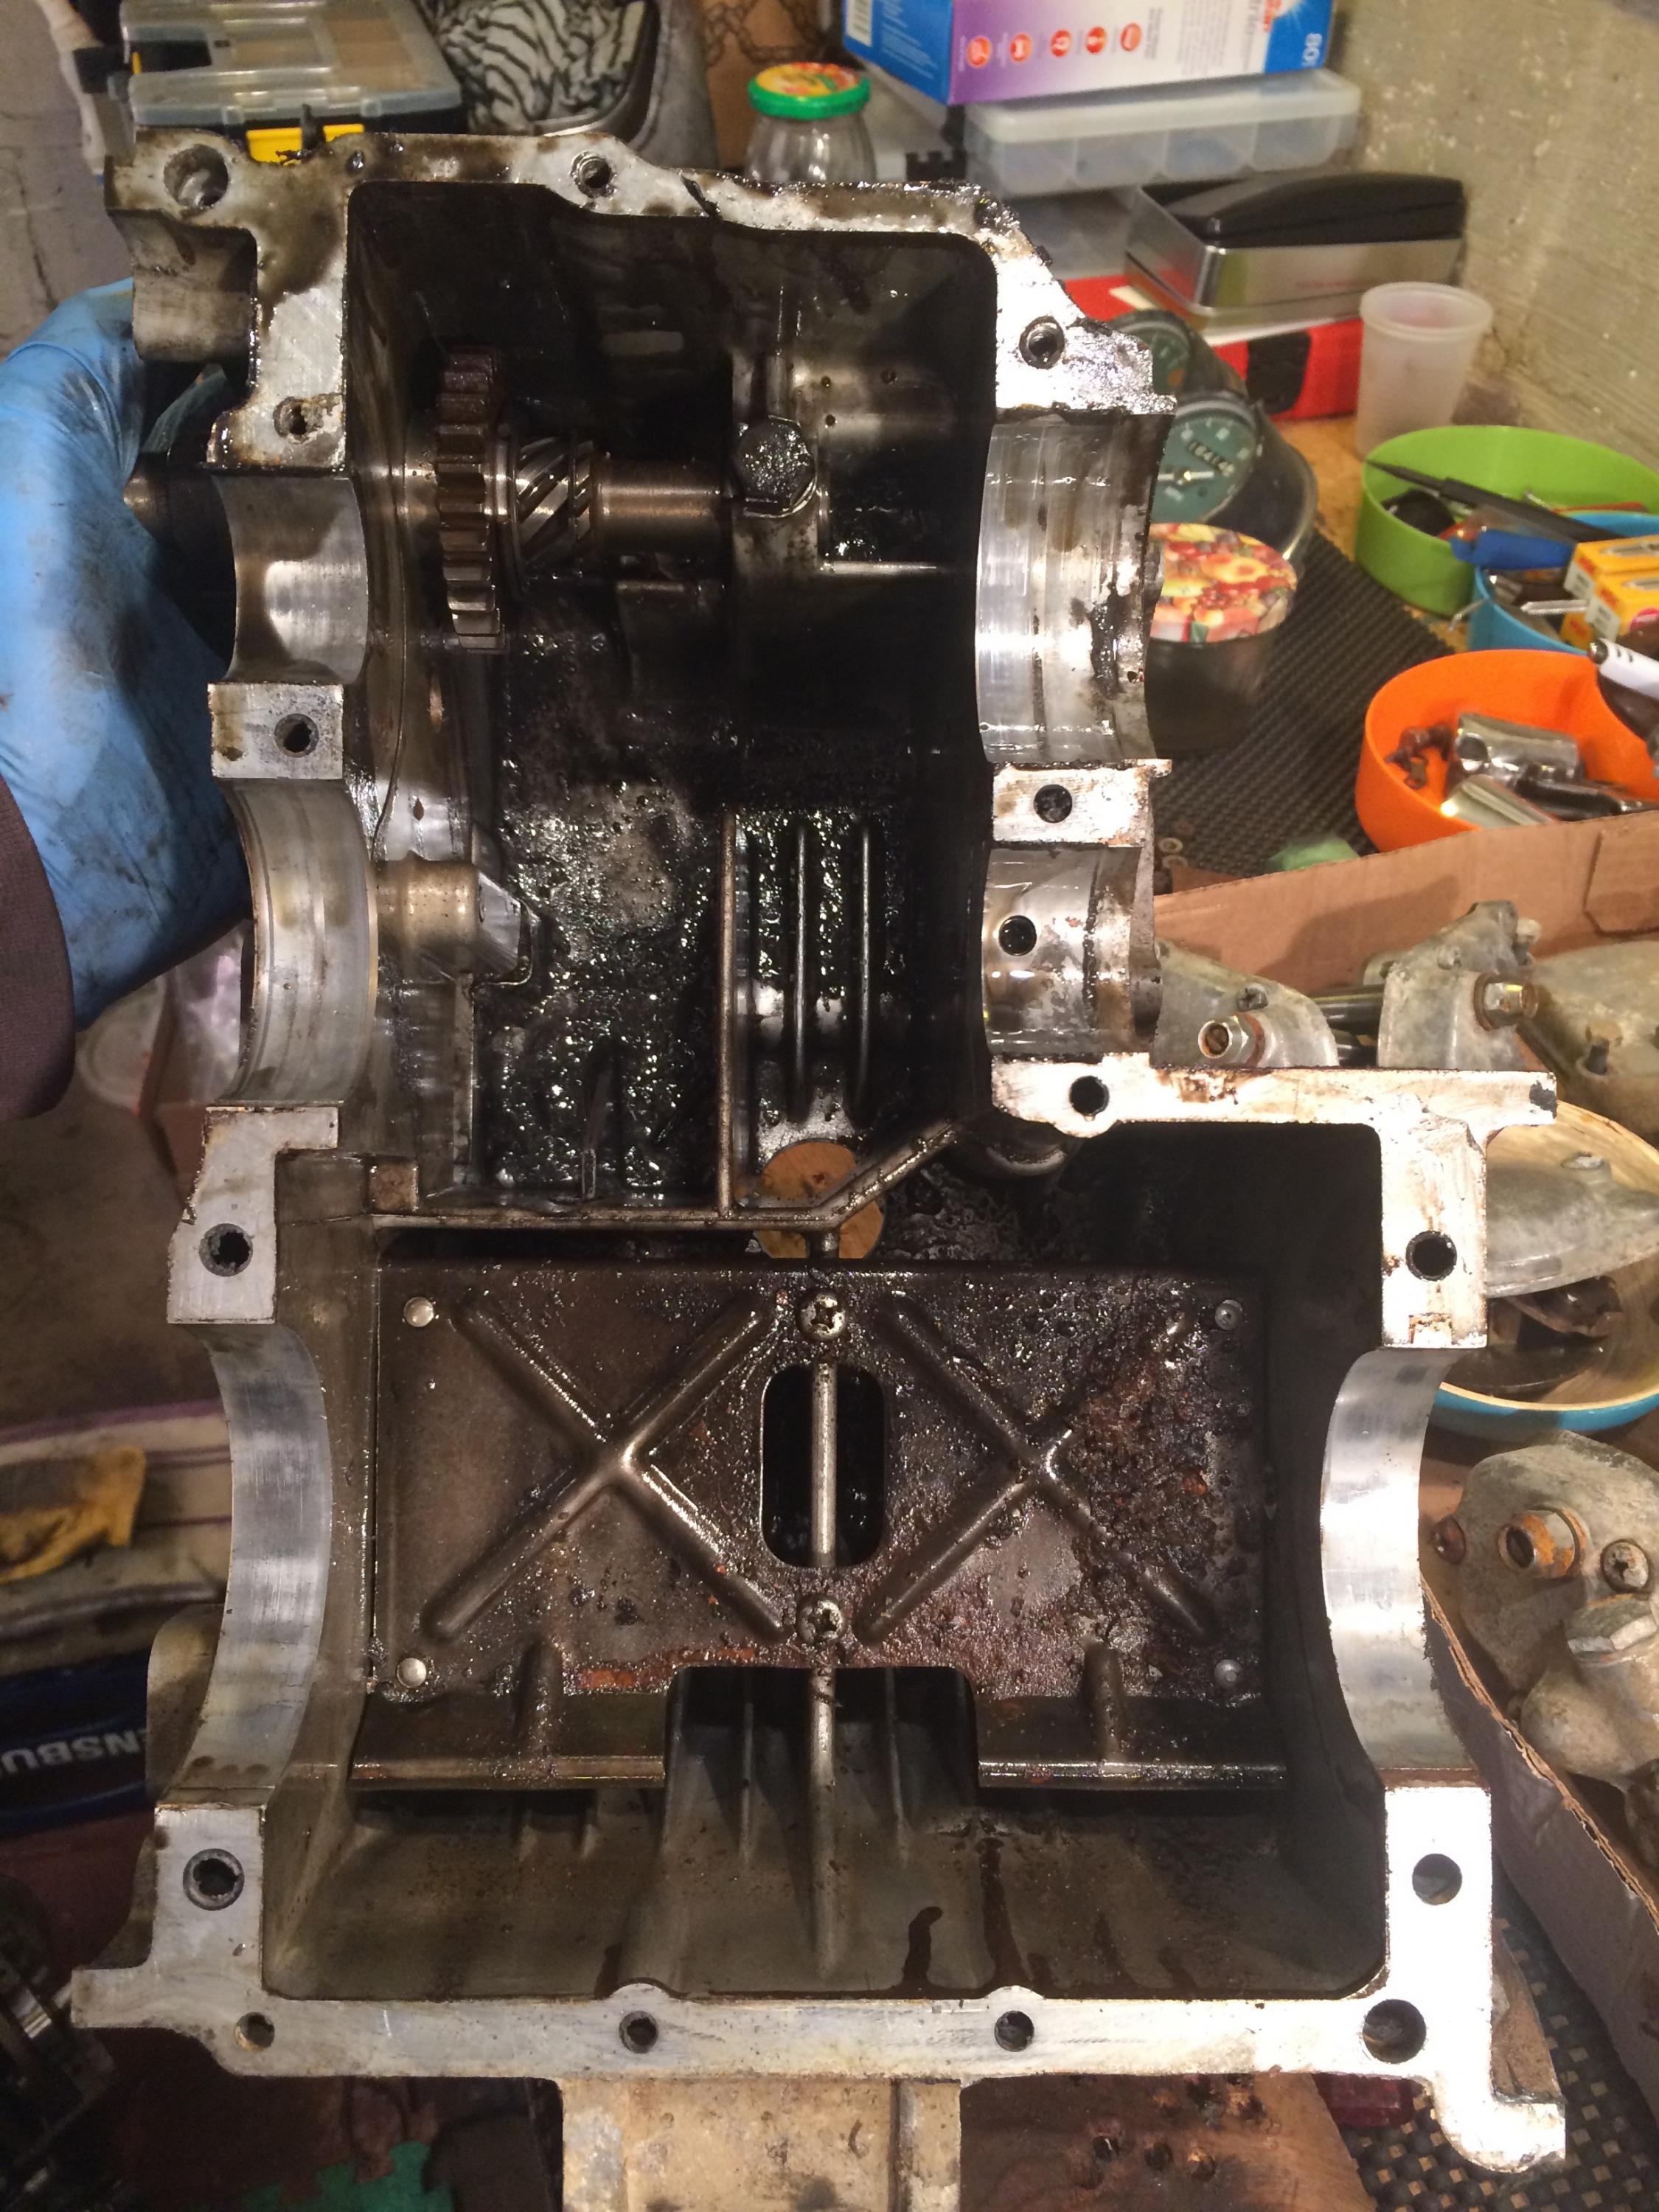 CB450 - Project or not?-img_7251.jpg